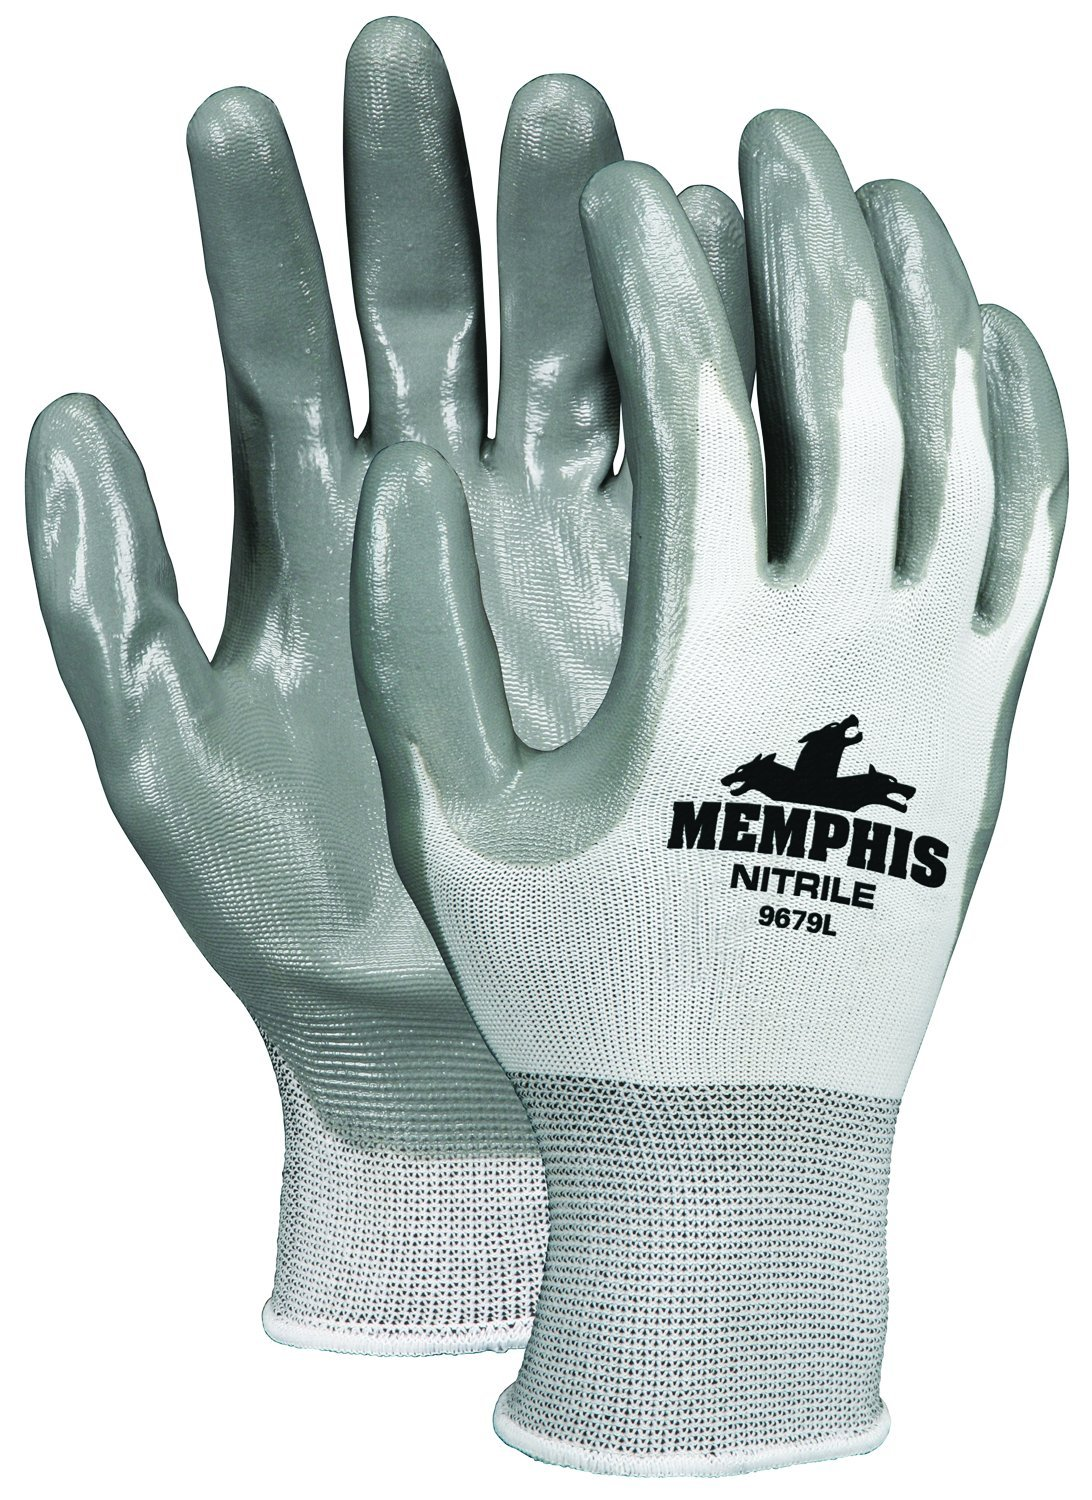 MCR Safety 9679S Memphis Nylon Shell Yellow Hem Gloves with Gray Nitrile Dipped Palm and Fingers, Gray/White, Small, 1-Pair